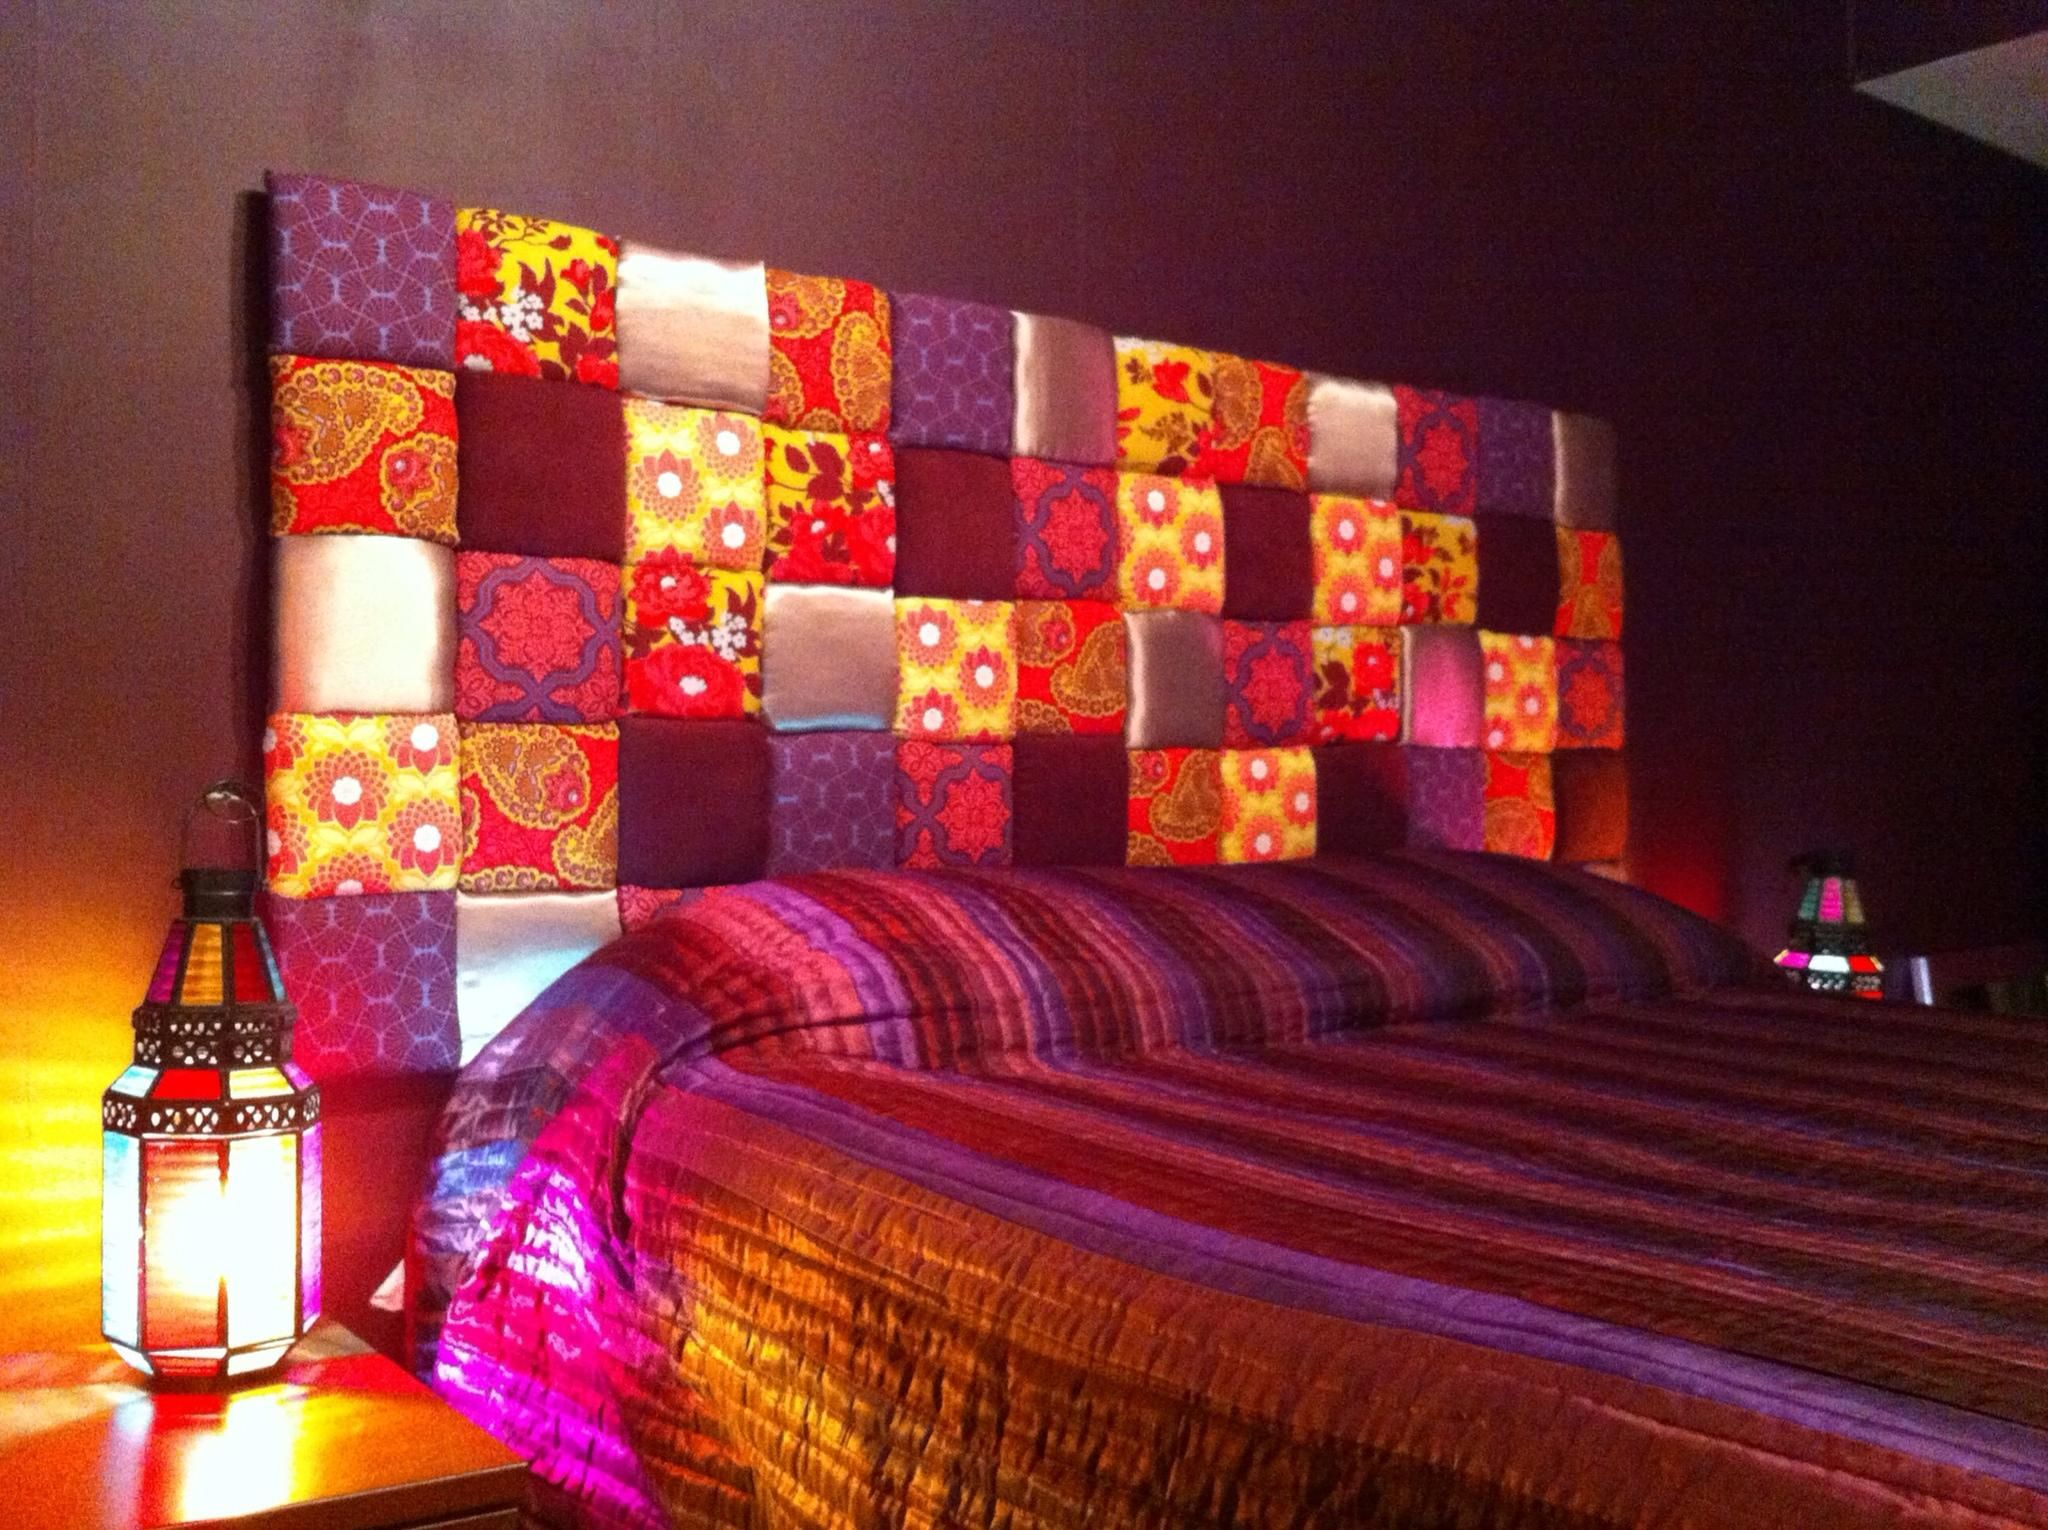 DIY Padded Patchwork Headboard Instructions DIY Crafts